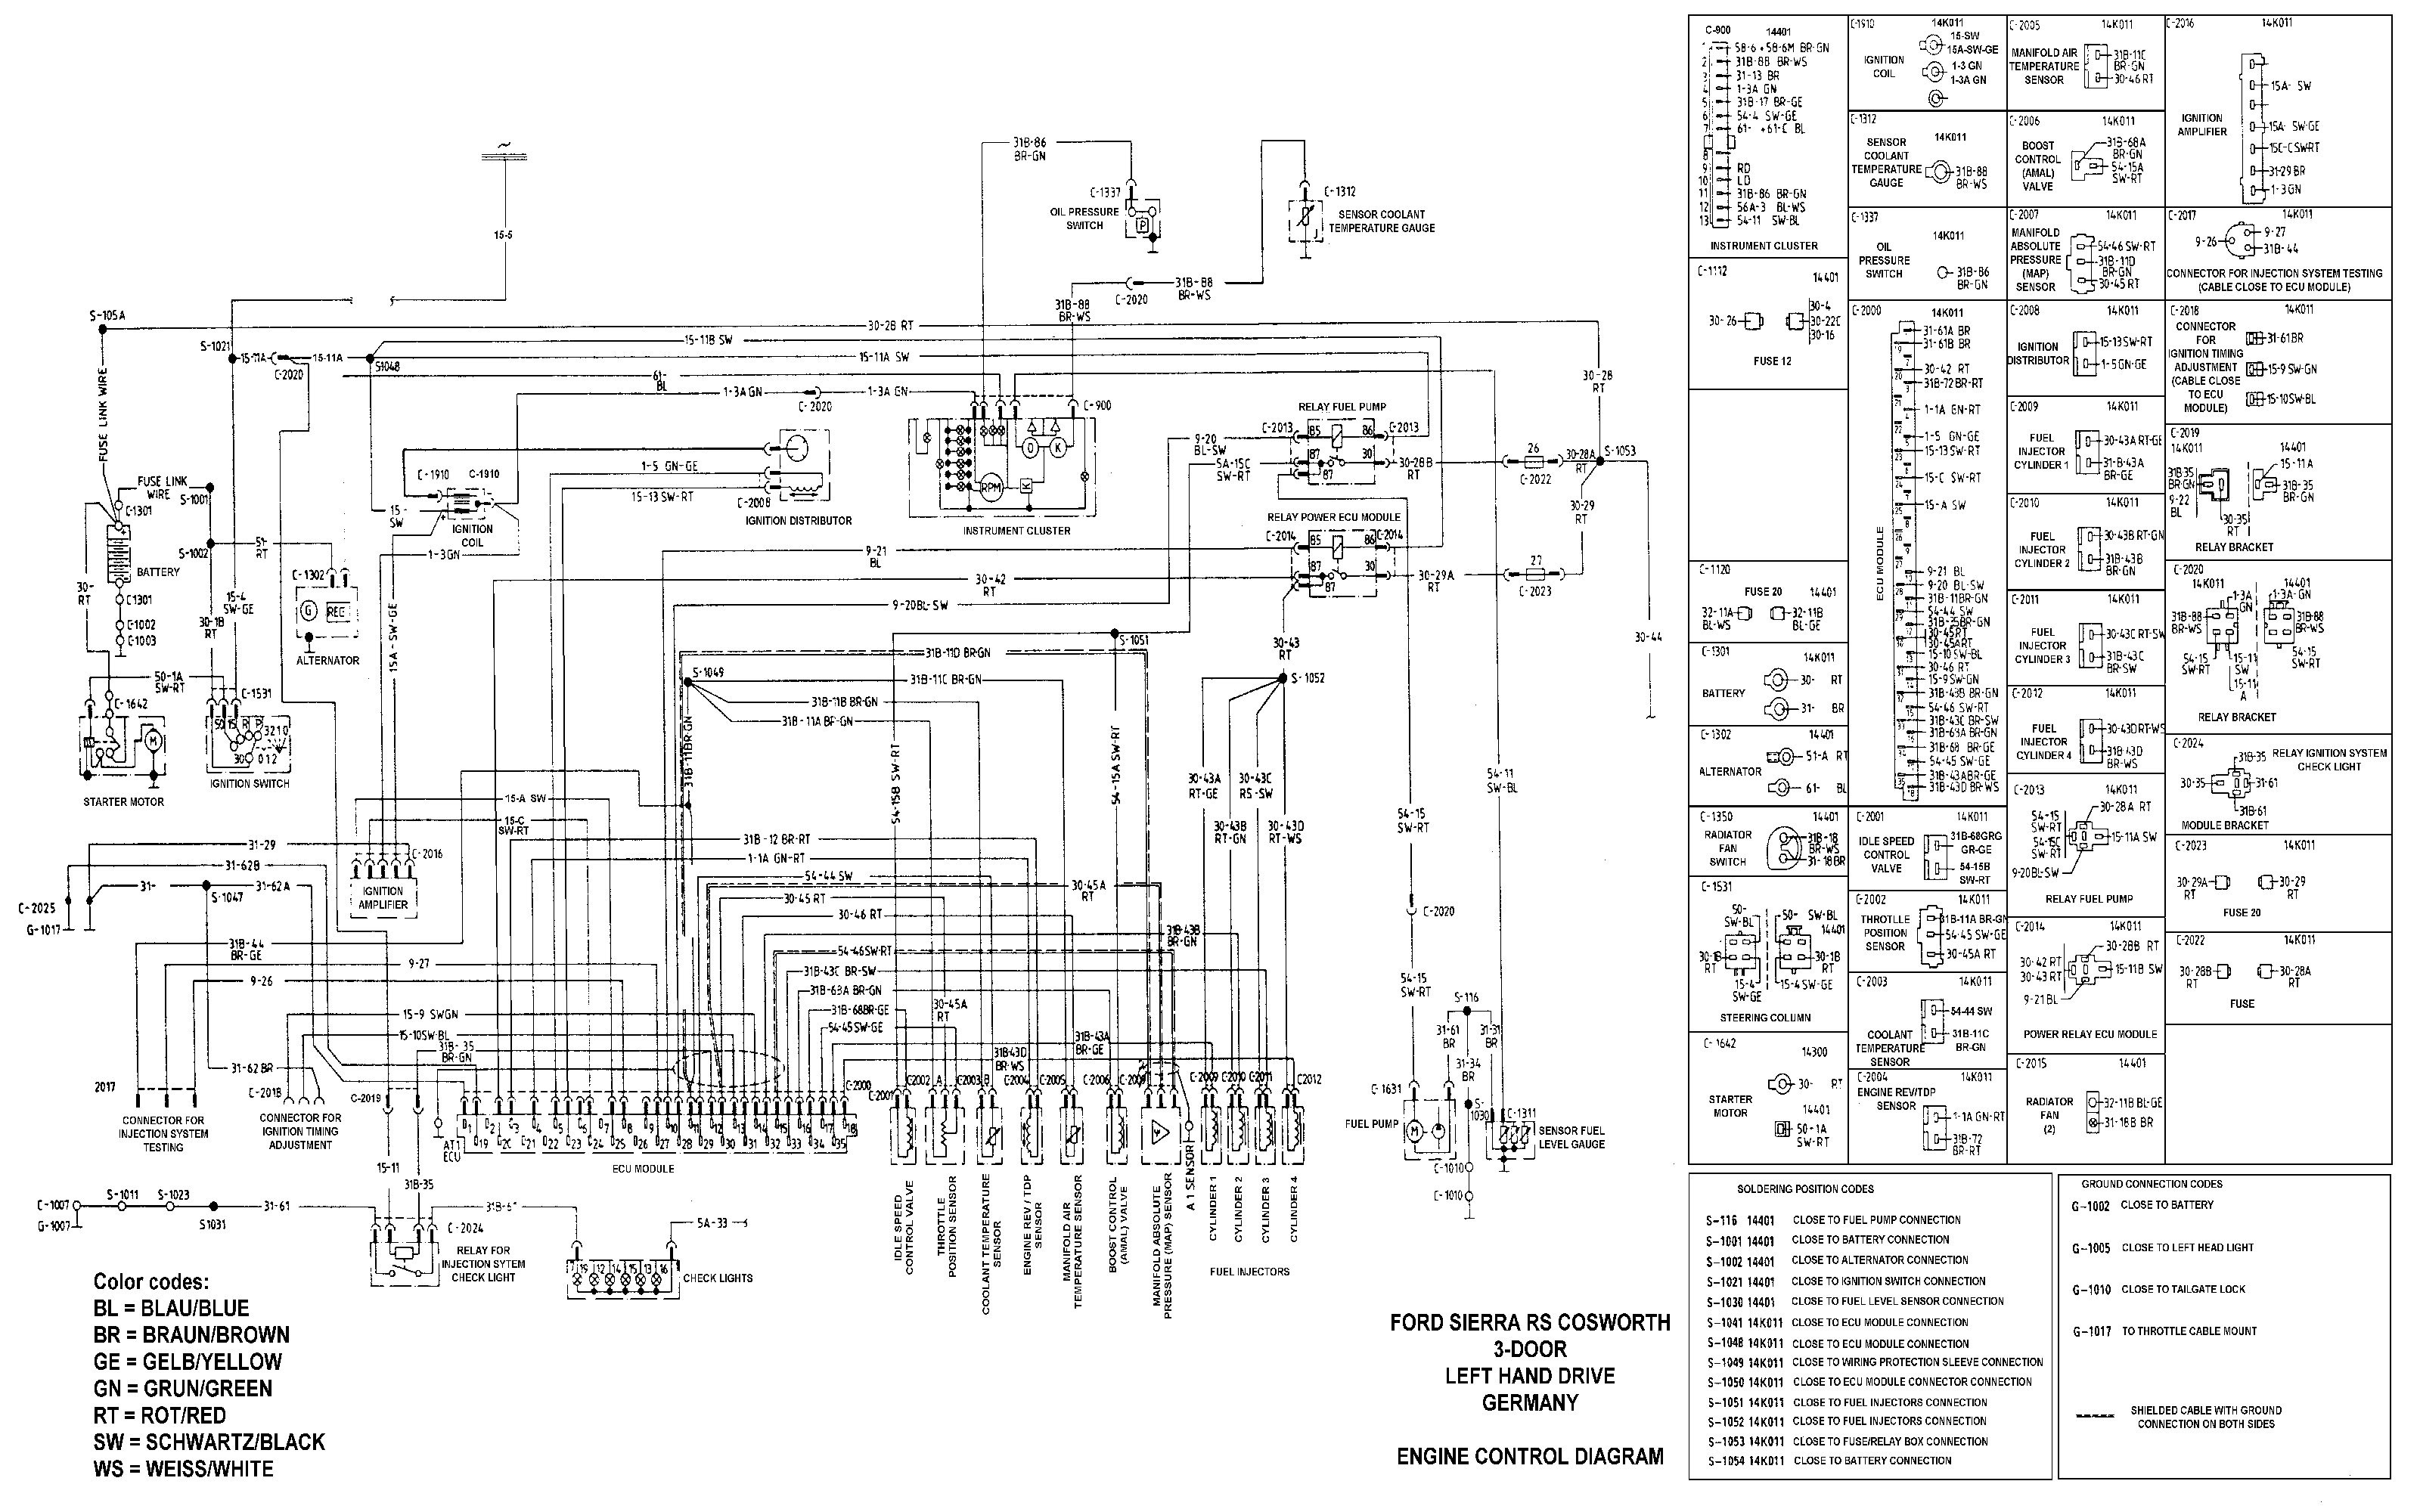 Ford Mk2 Wiring Diagram Library Falcon Au 2012 Focus Canopi Me Inside Techrush Of